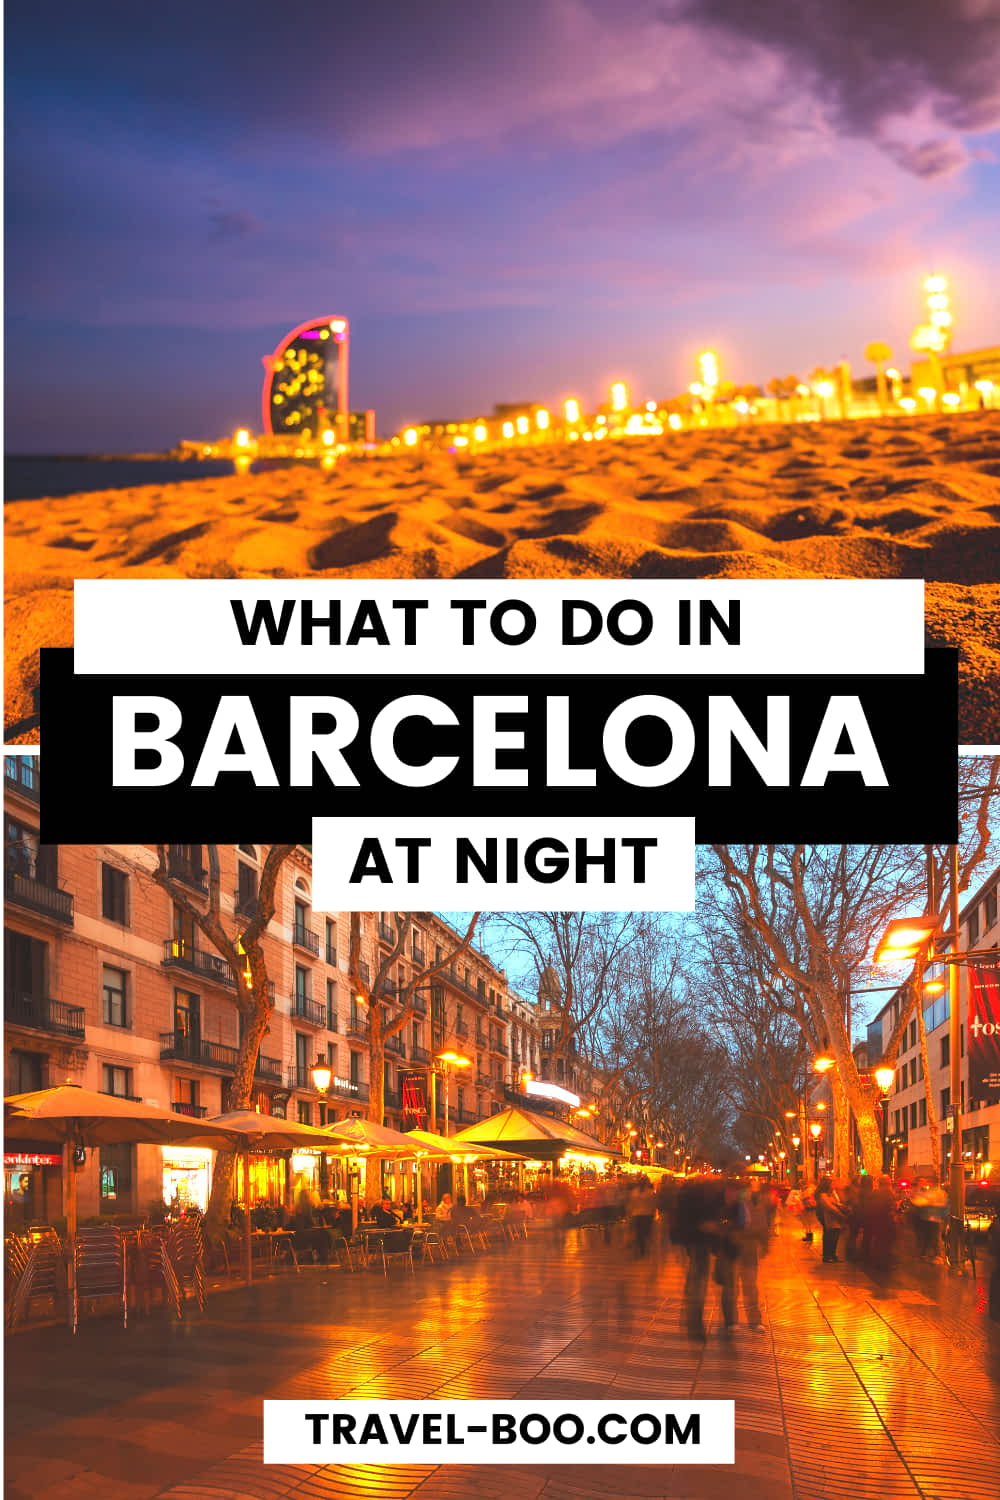 The Best Things to do in Barcelona at night. Check out this guide on all the top things to do in Barcelona at night-time. #barcelonaspain #barcelona #spaintravel #barcelonatravel | Barcelona Spain | Barcelona | Barcelona Spain Things to do | Spain Travel Guide | Spain Travel Things to do | Europe Travel | Europe Travel Guide